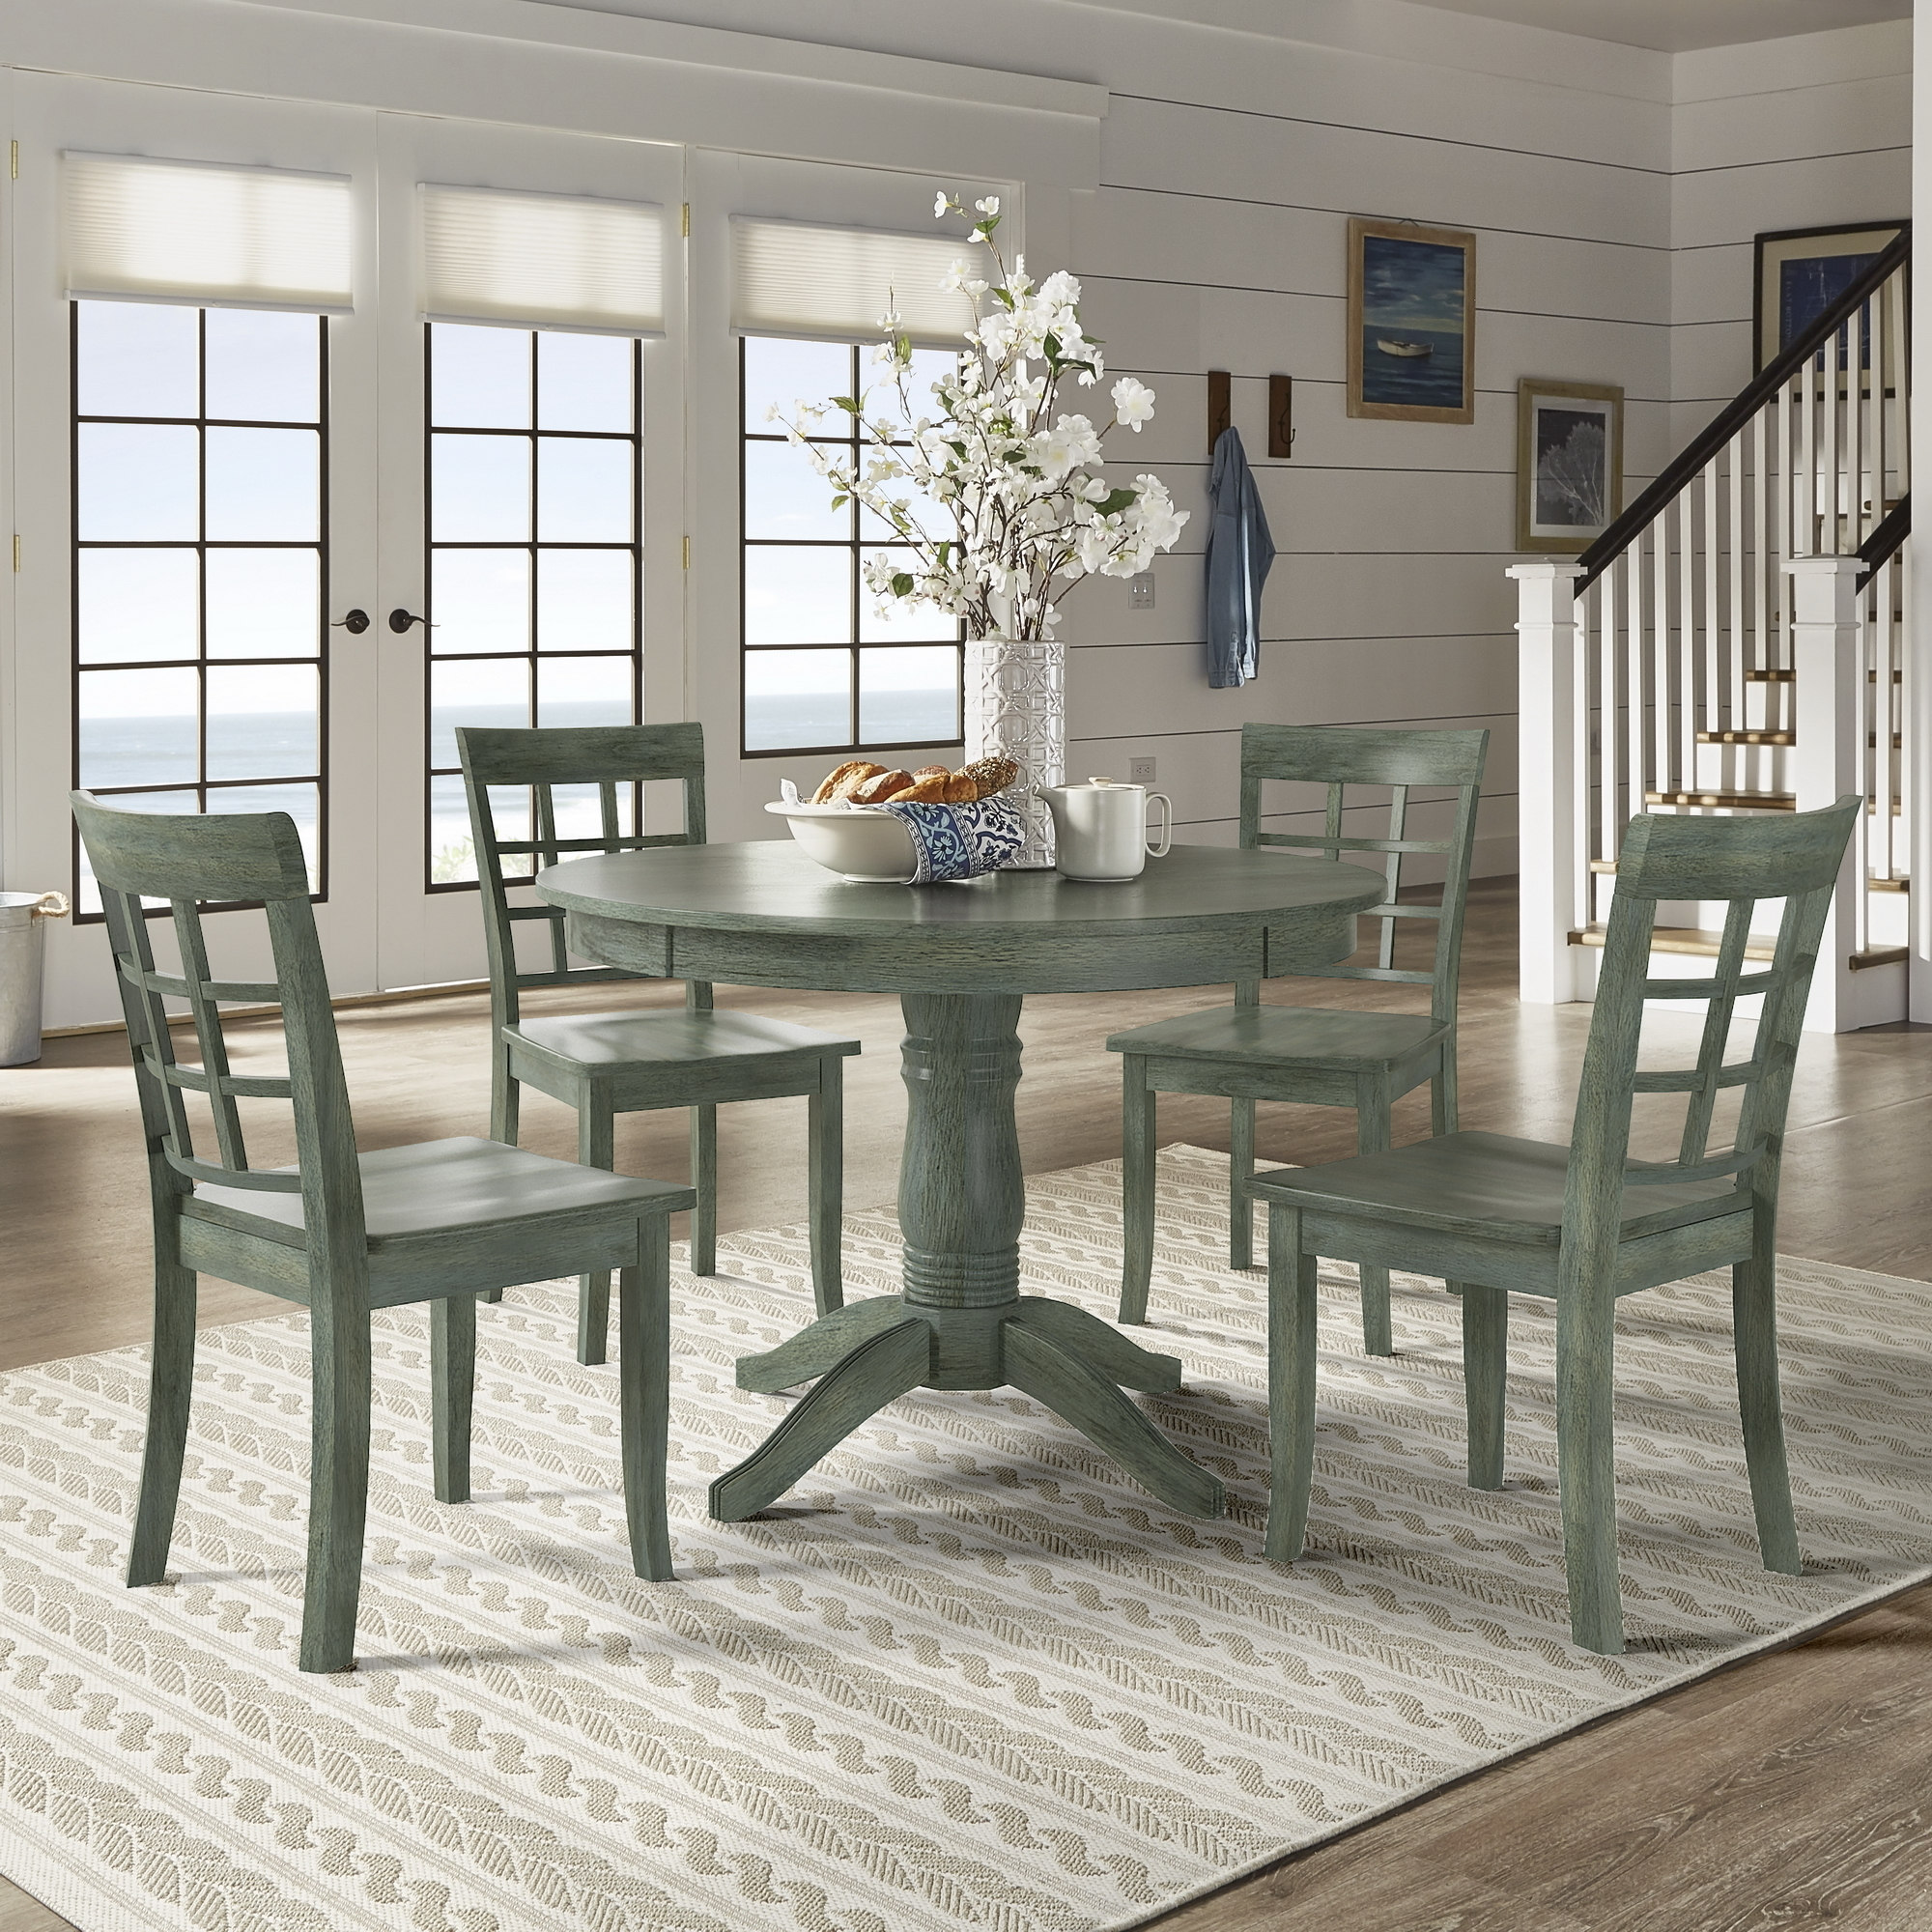 Inspire Q Wilmington Ii Round Pedestal Base Antique Sage Green 5 Piece Dining Set By Classic Walmart Com Walmart Com